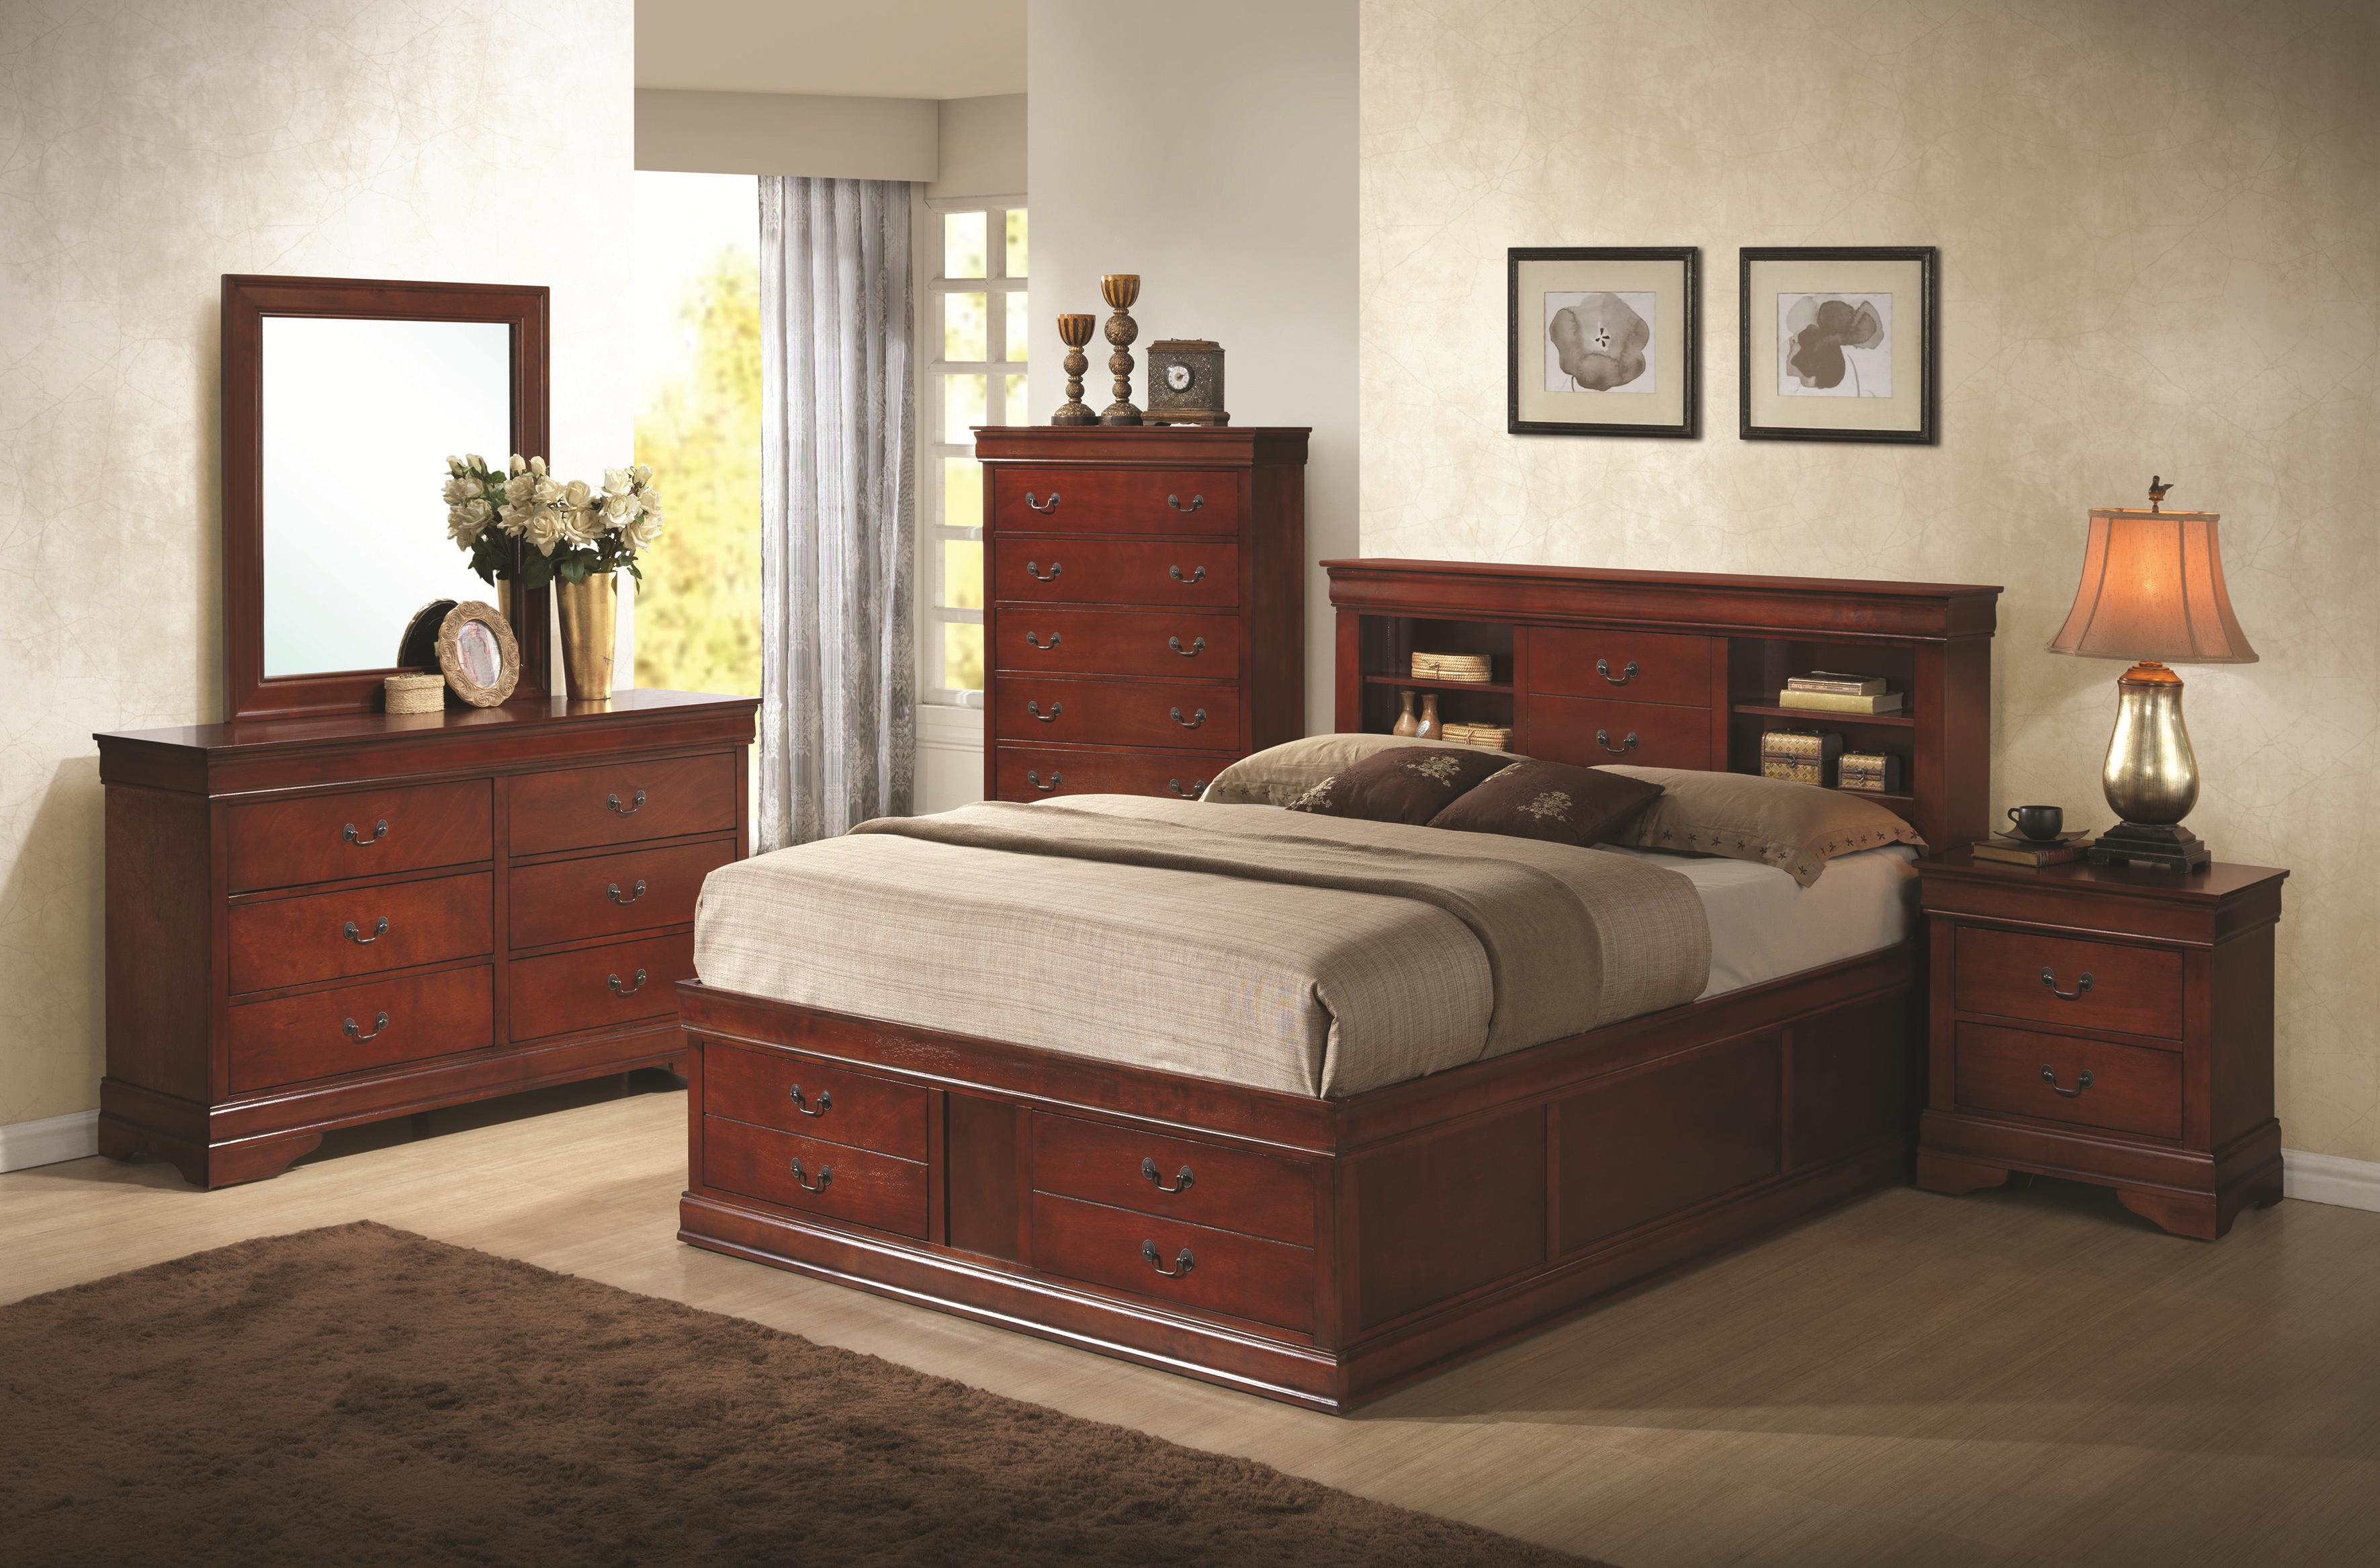 Coaster louis philippe queen bedroom group dunk bright for Bedroom furniture groups